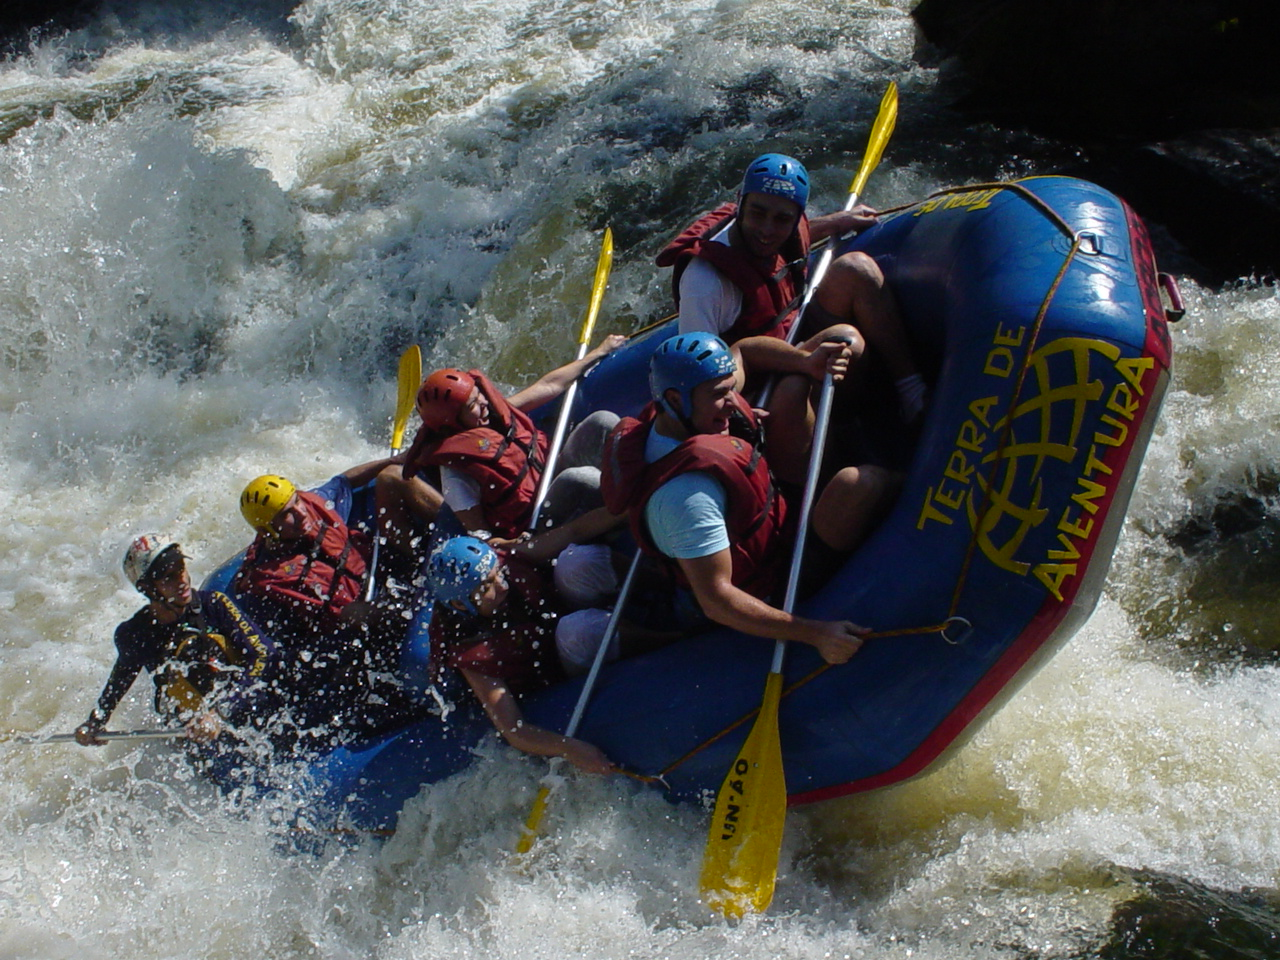 whitewater rafting Find grand canyon river rafting tours from the best embark on colorado river  whitewater rafting trips from las vegas and flagstaff ultimate river rafting.